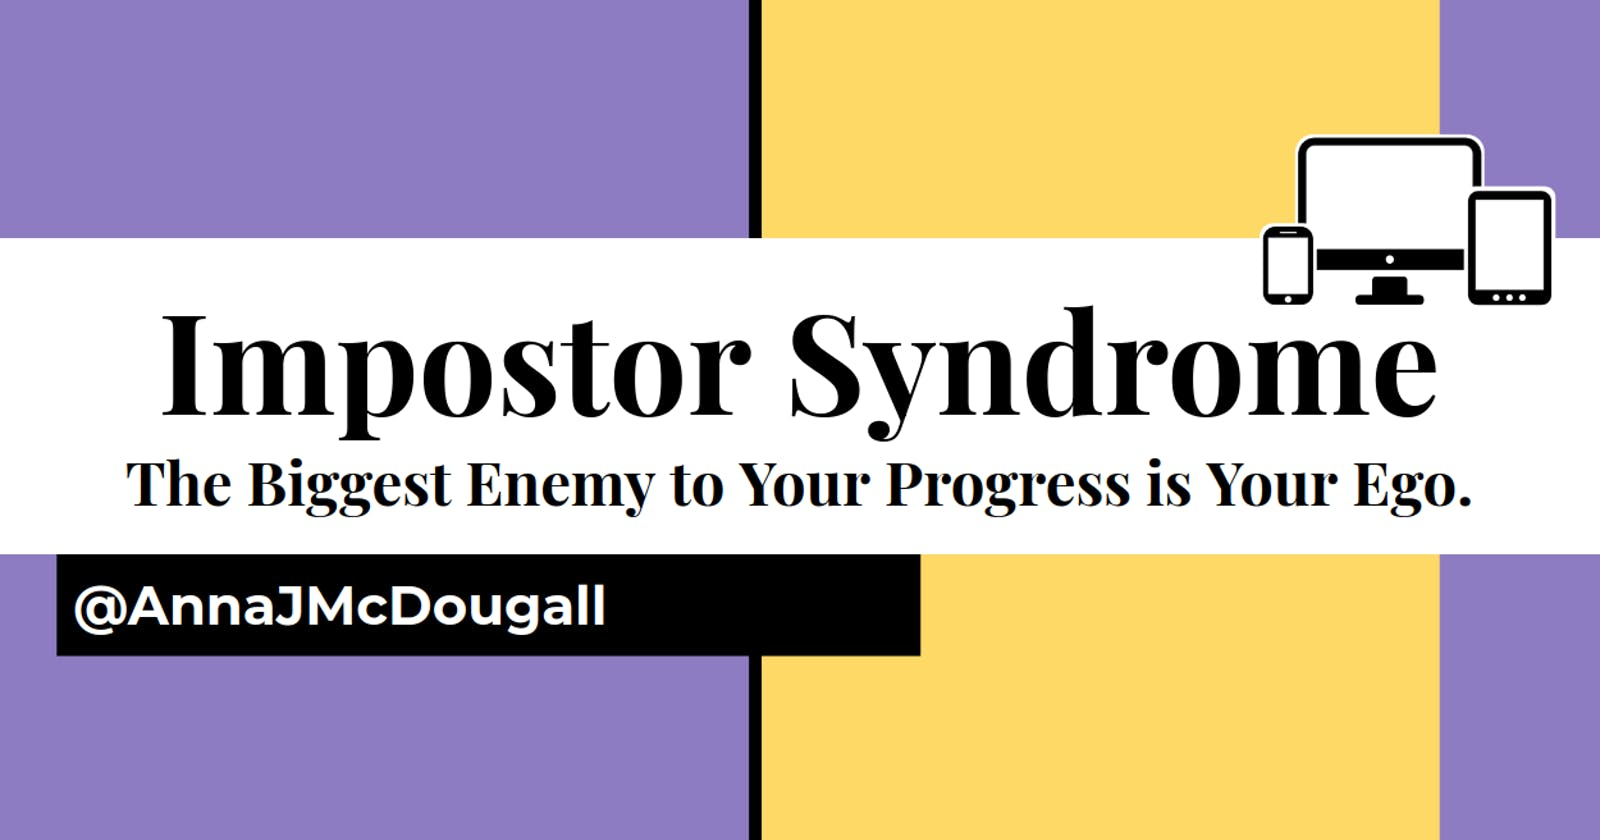 Impostor Syndrome: The Biggest Enemy to Your Progress is Your Ego